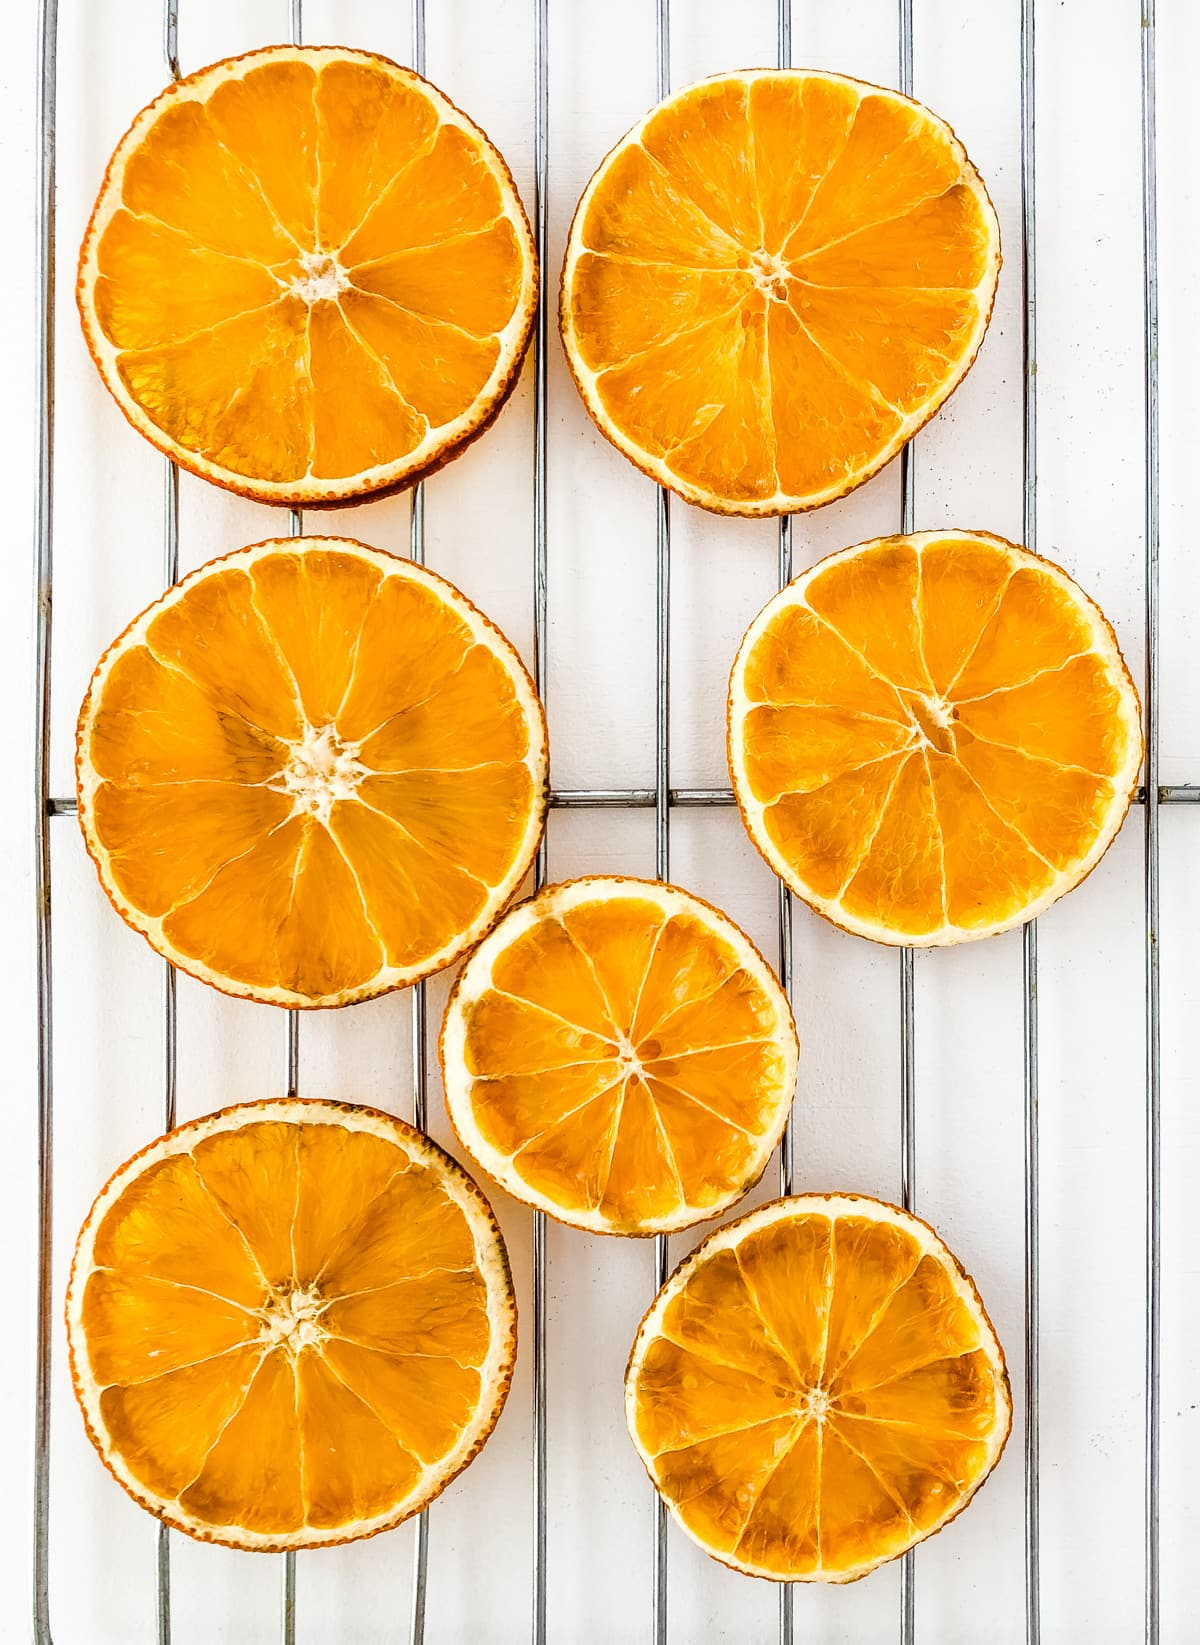 A cooling rack with dried orange slices